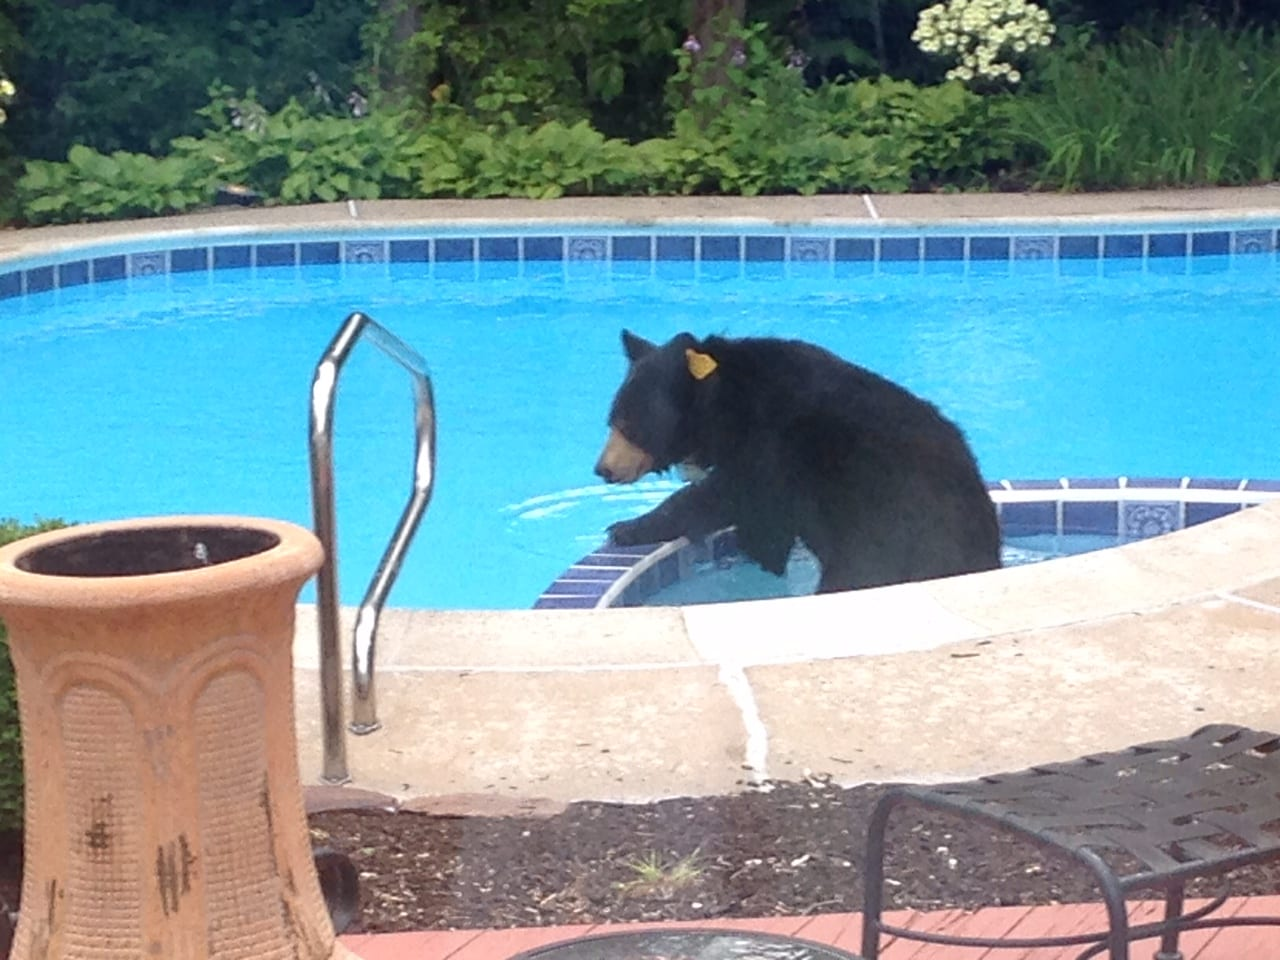 West hartford weather is perfect for swimming even for bears we ha west hartford news for Bears in swimming pool new jersey